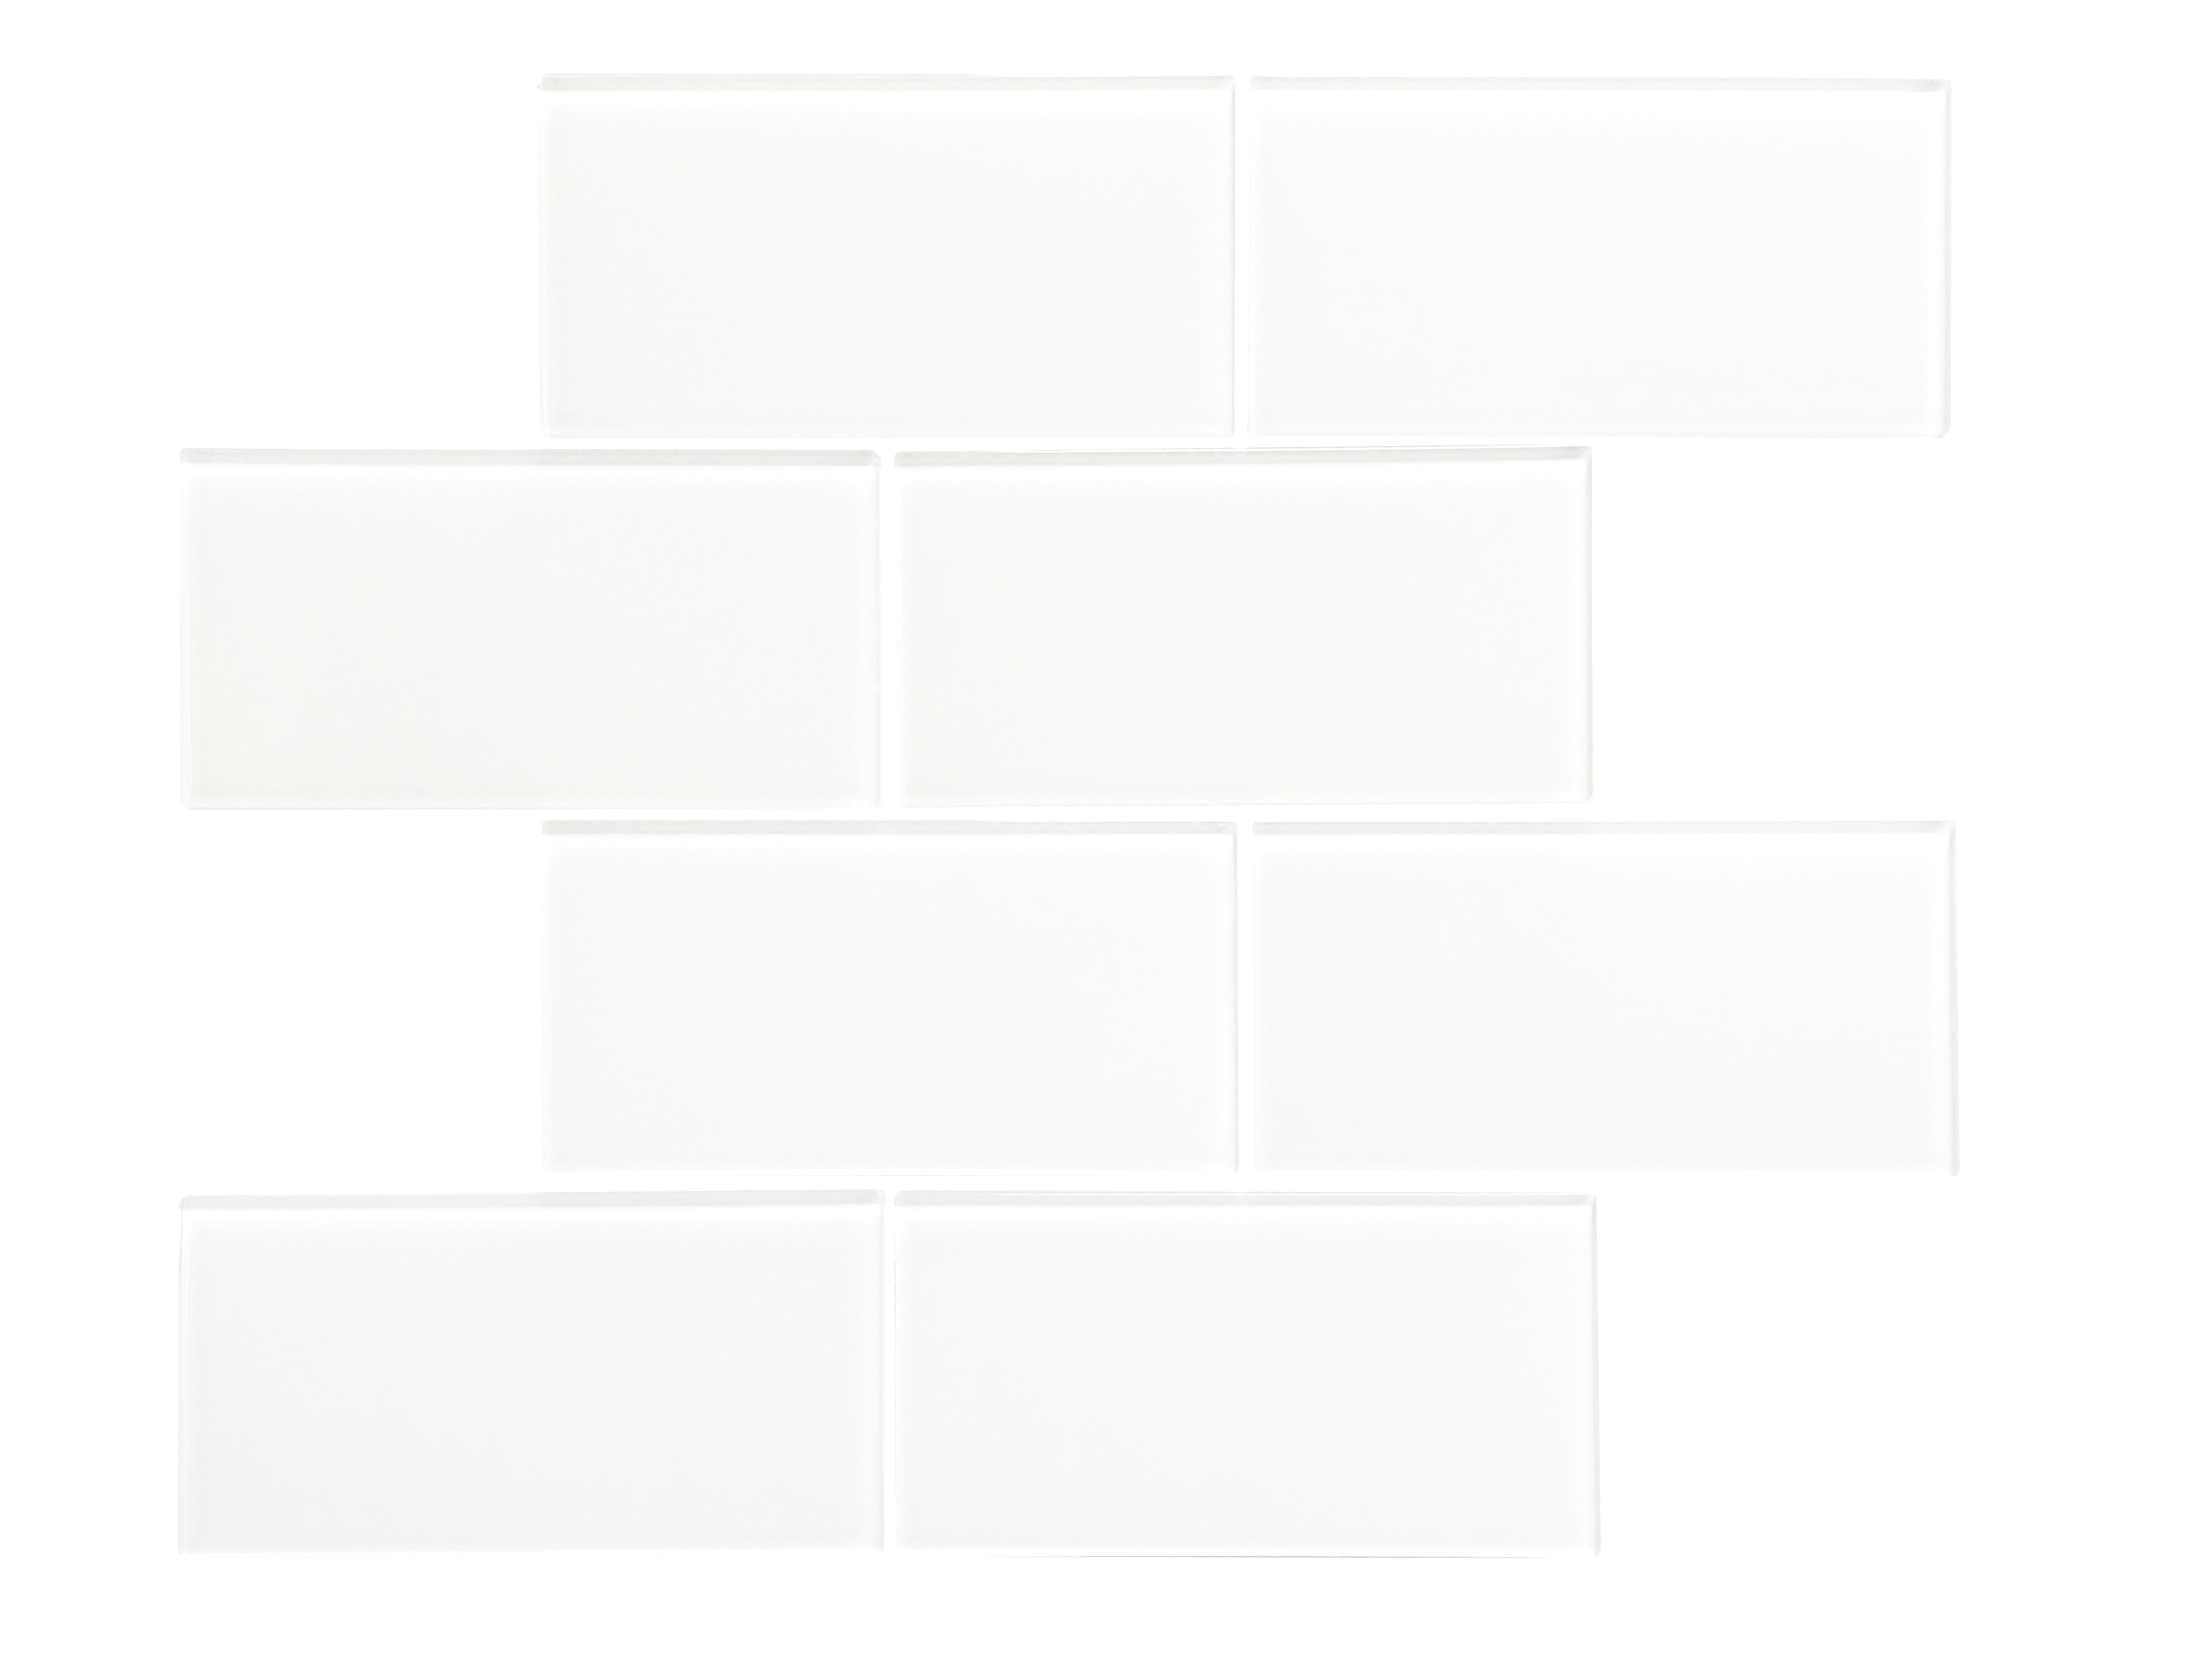 """Glass Mosaic / 16 x 12 x 0.16 inches / Glossy Large 3"""" X 6"""" X 4mm Glass Subway Mosaic Tile In White 0"""